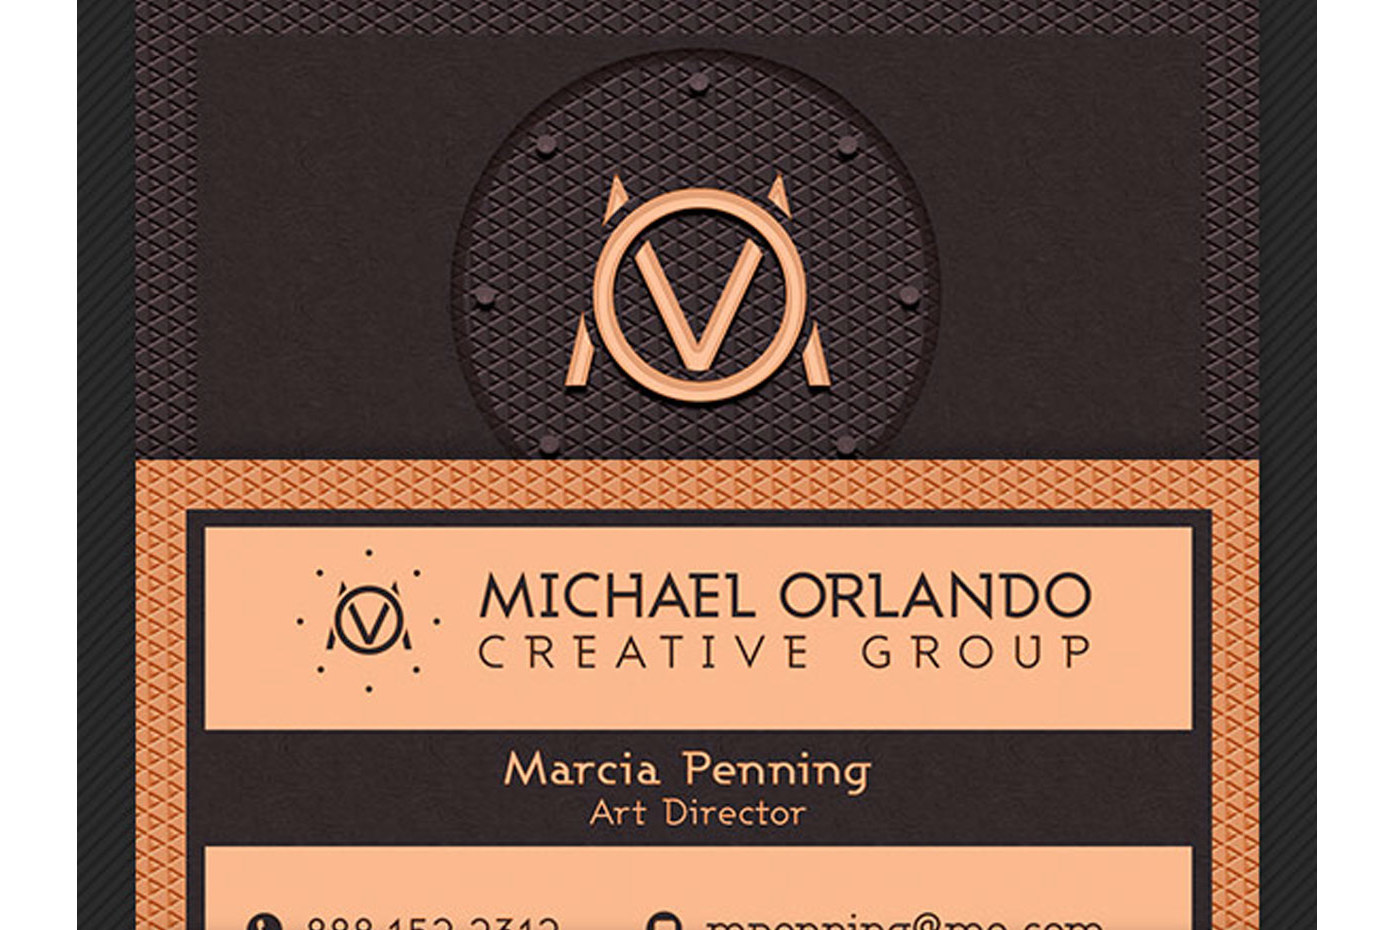 Creative Group Business Card Template example image 3